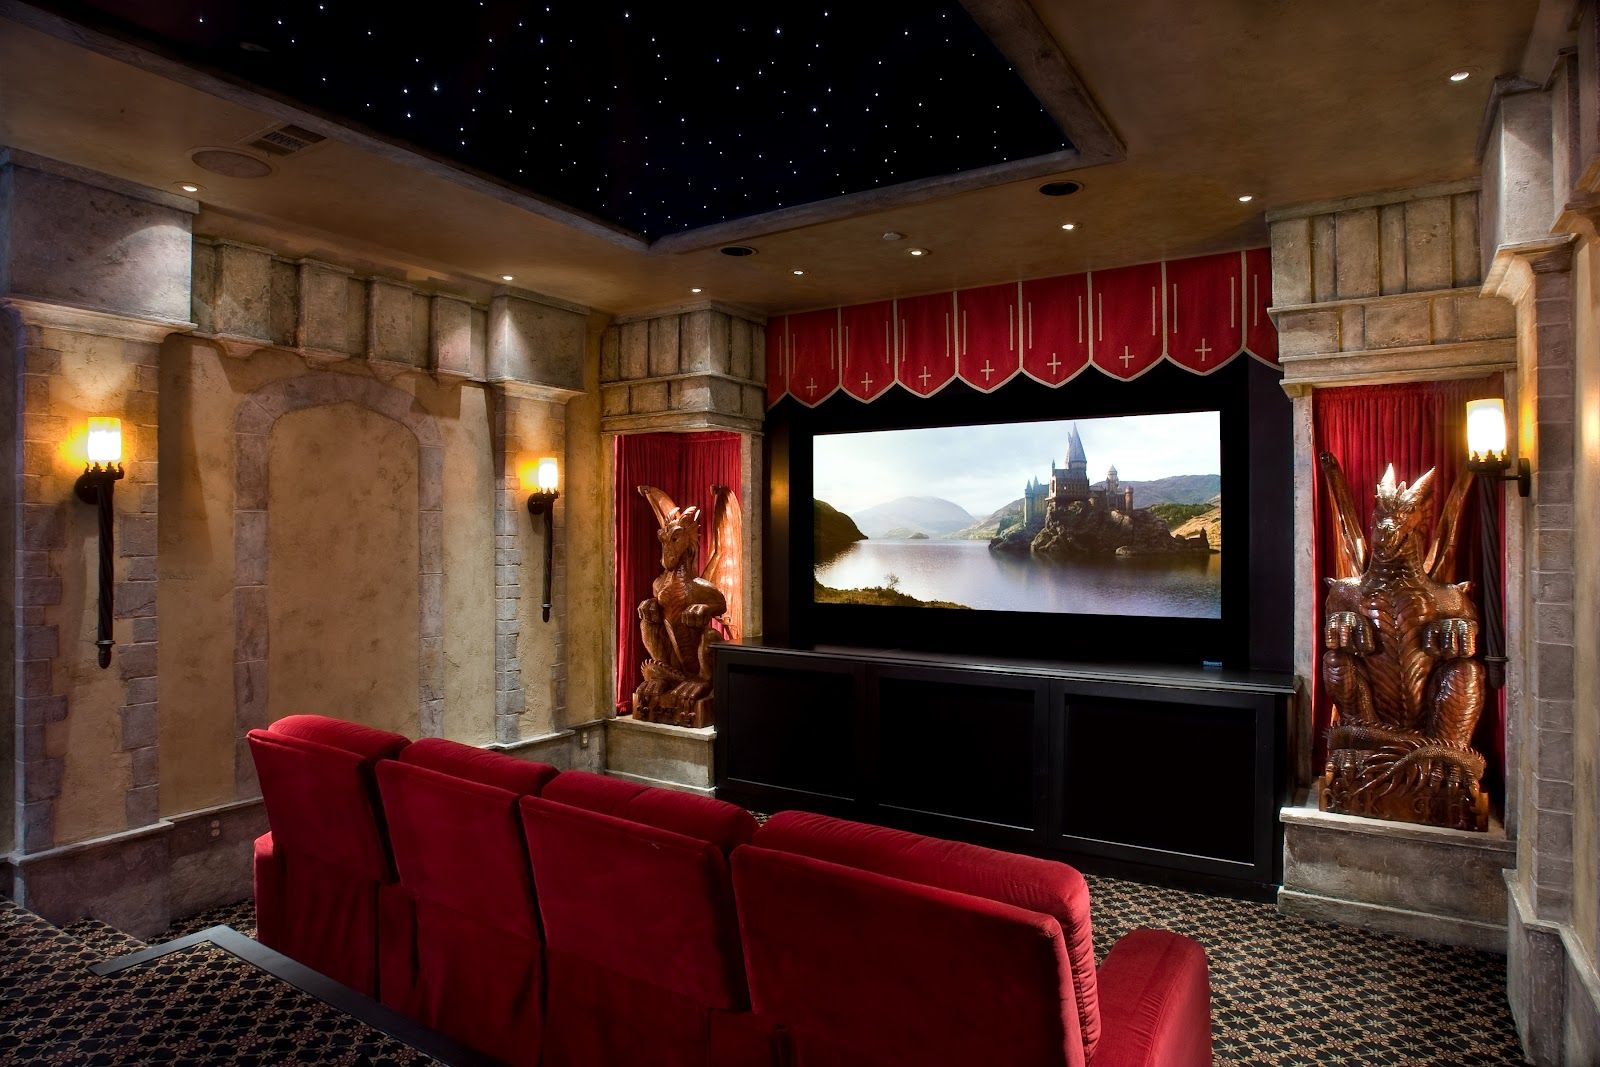 Gorgeous Archaic Style Home Theater Room Interior Design With Marble Wall  And Red Sofa Seat Also Awesome Dragon Sculpture Ornament And Fancy Ceiling  ...